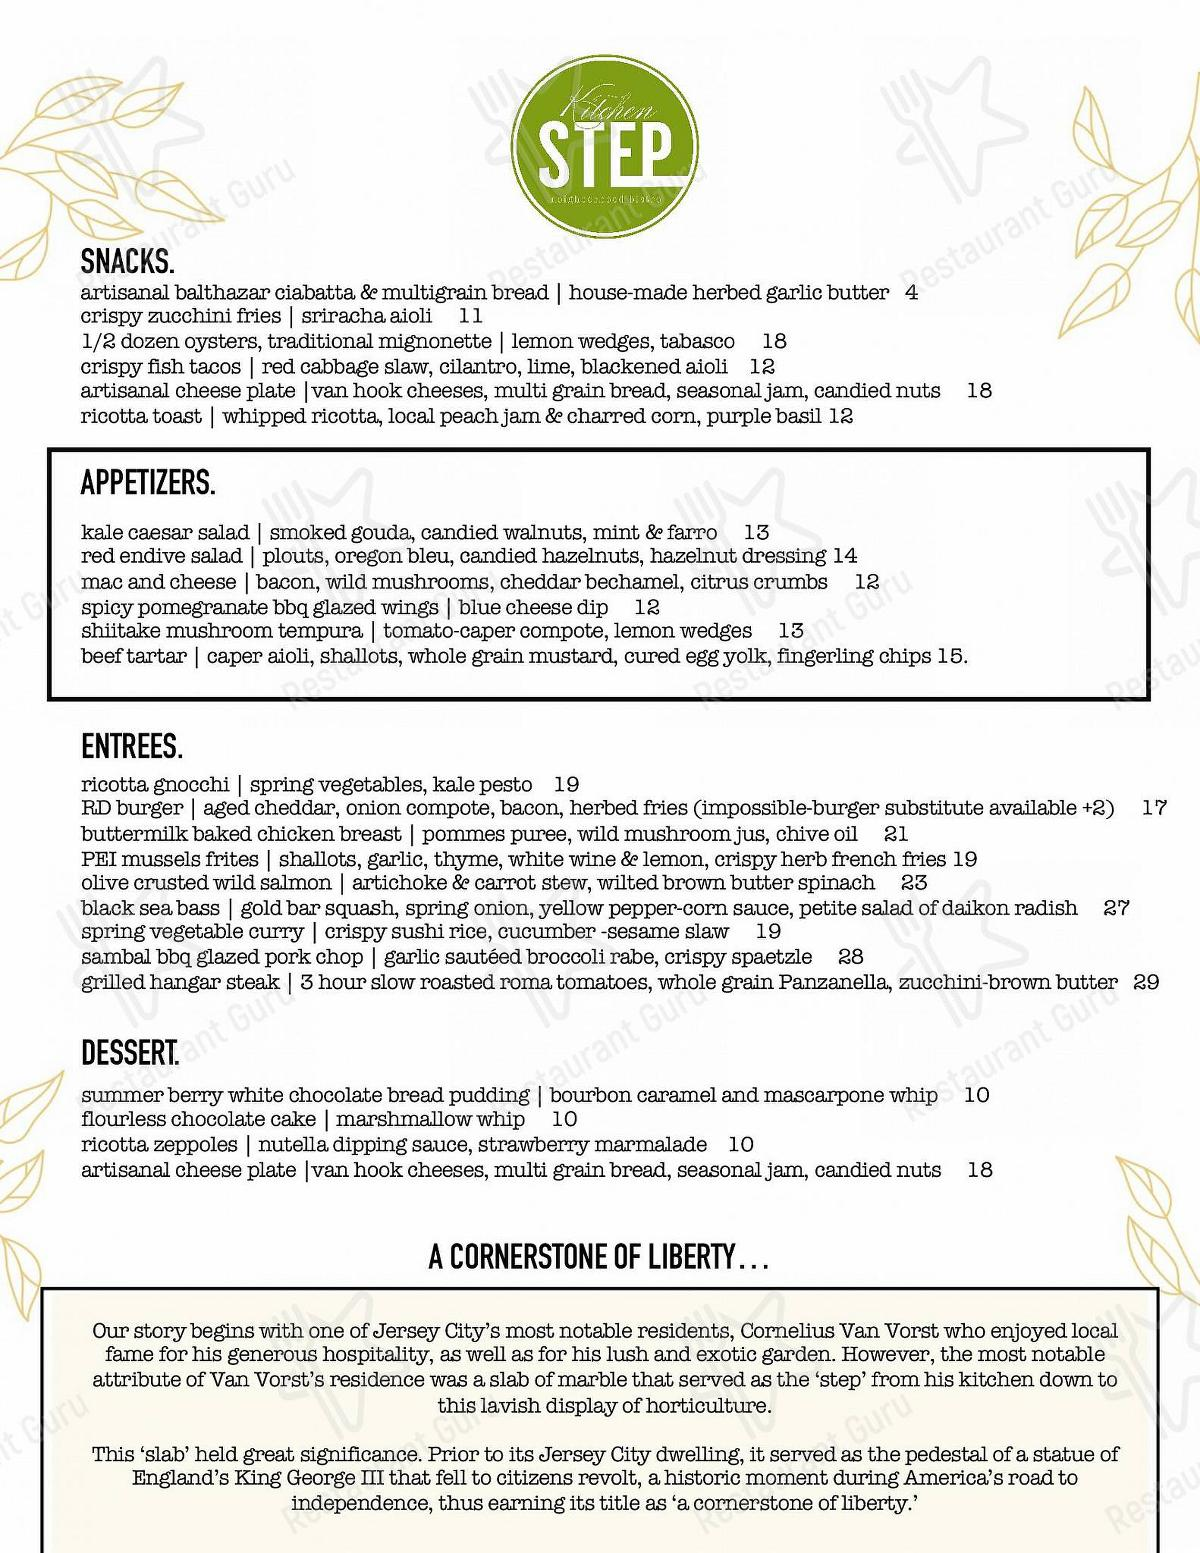 The Kitchen Step menu - dishes and beverages